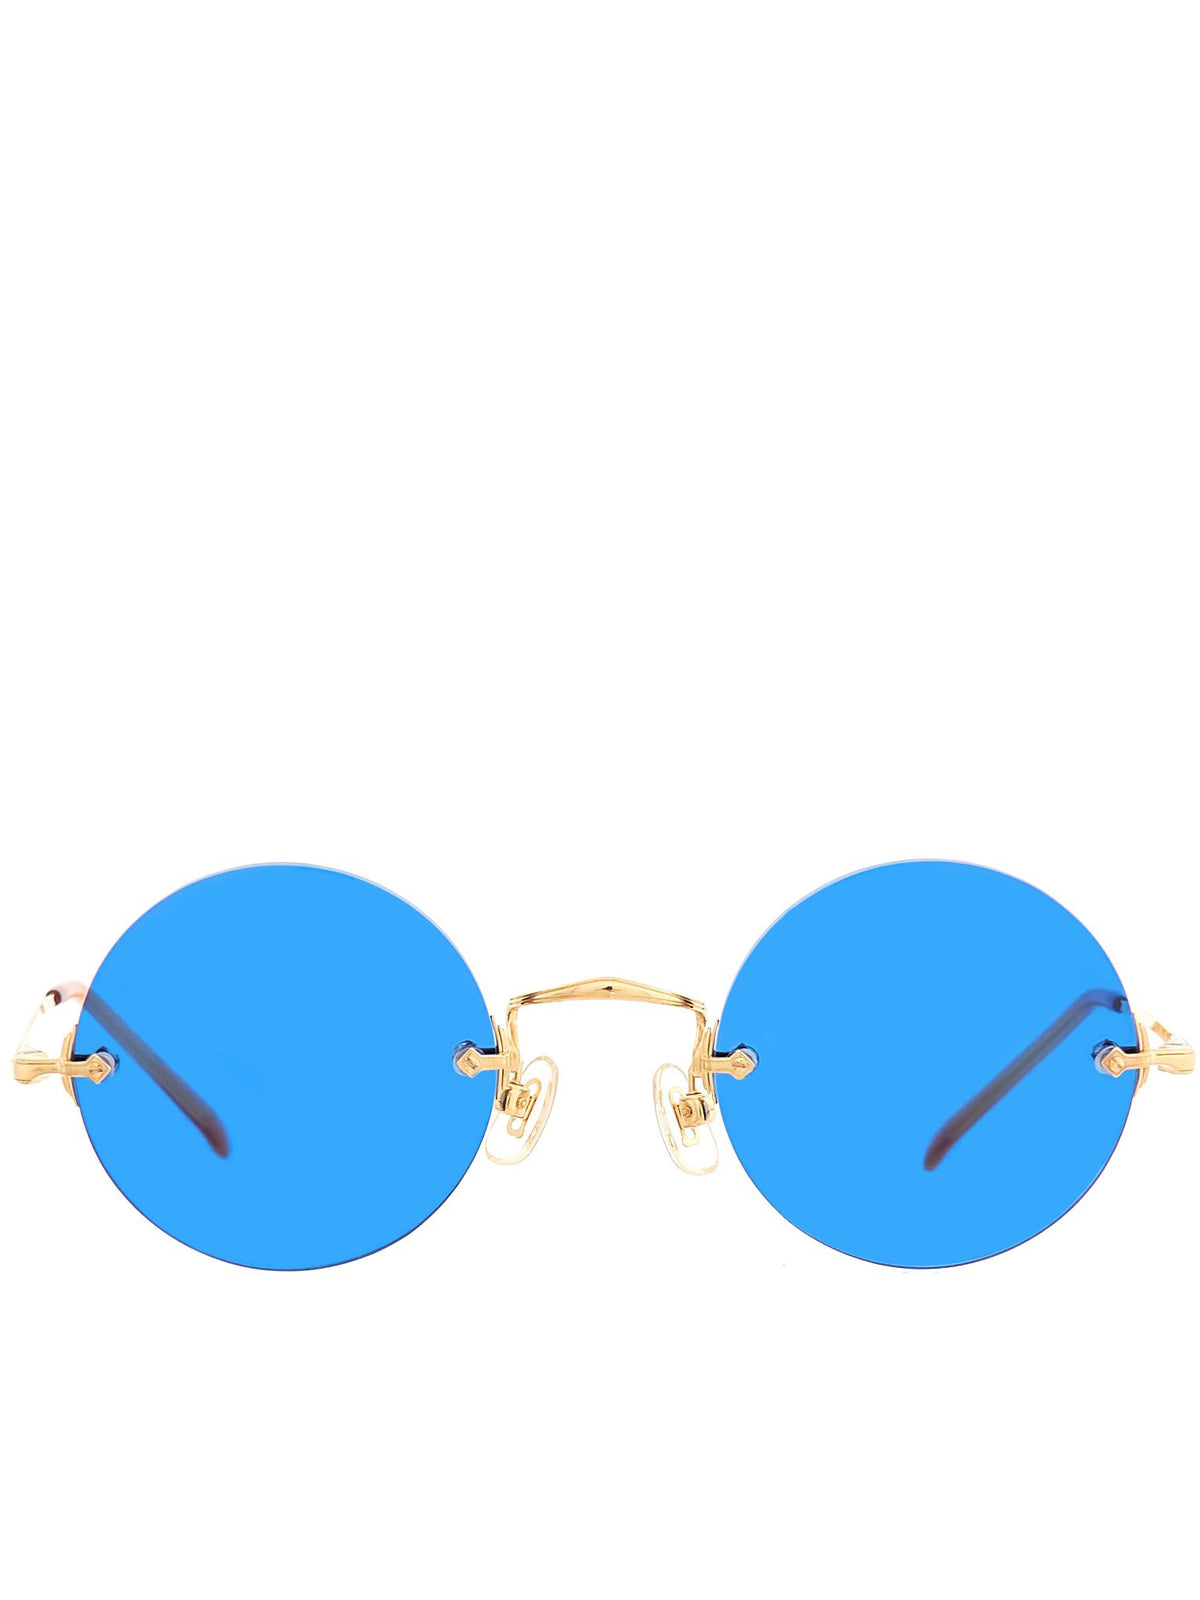 Anaaki Sunglasses (ANAAKI-M-GP-ROUND-BIG-BLUE-PUR)